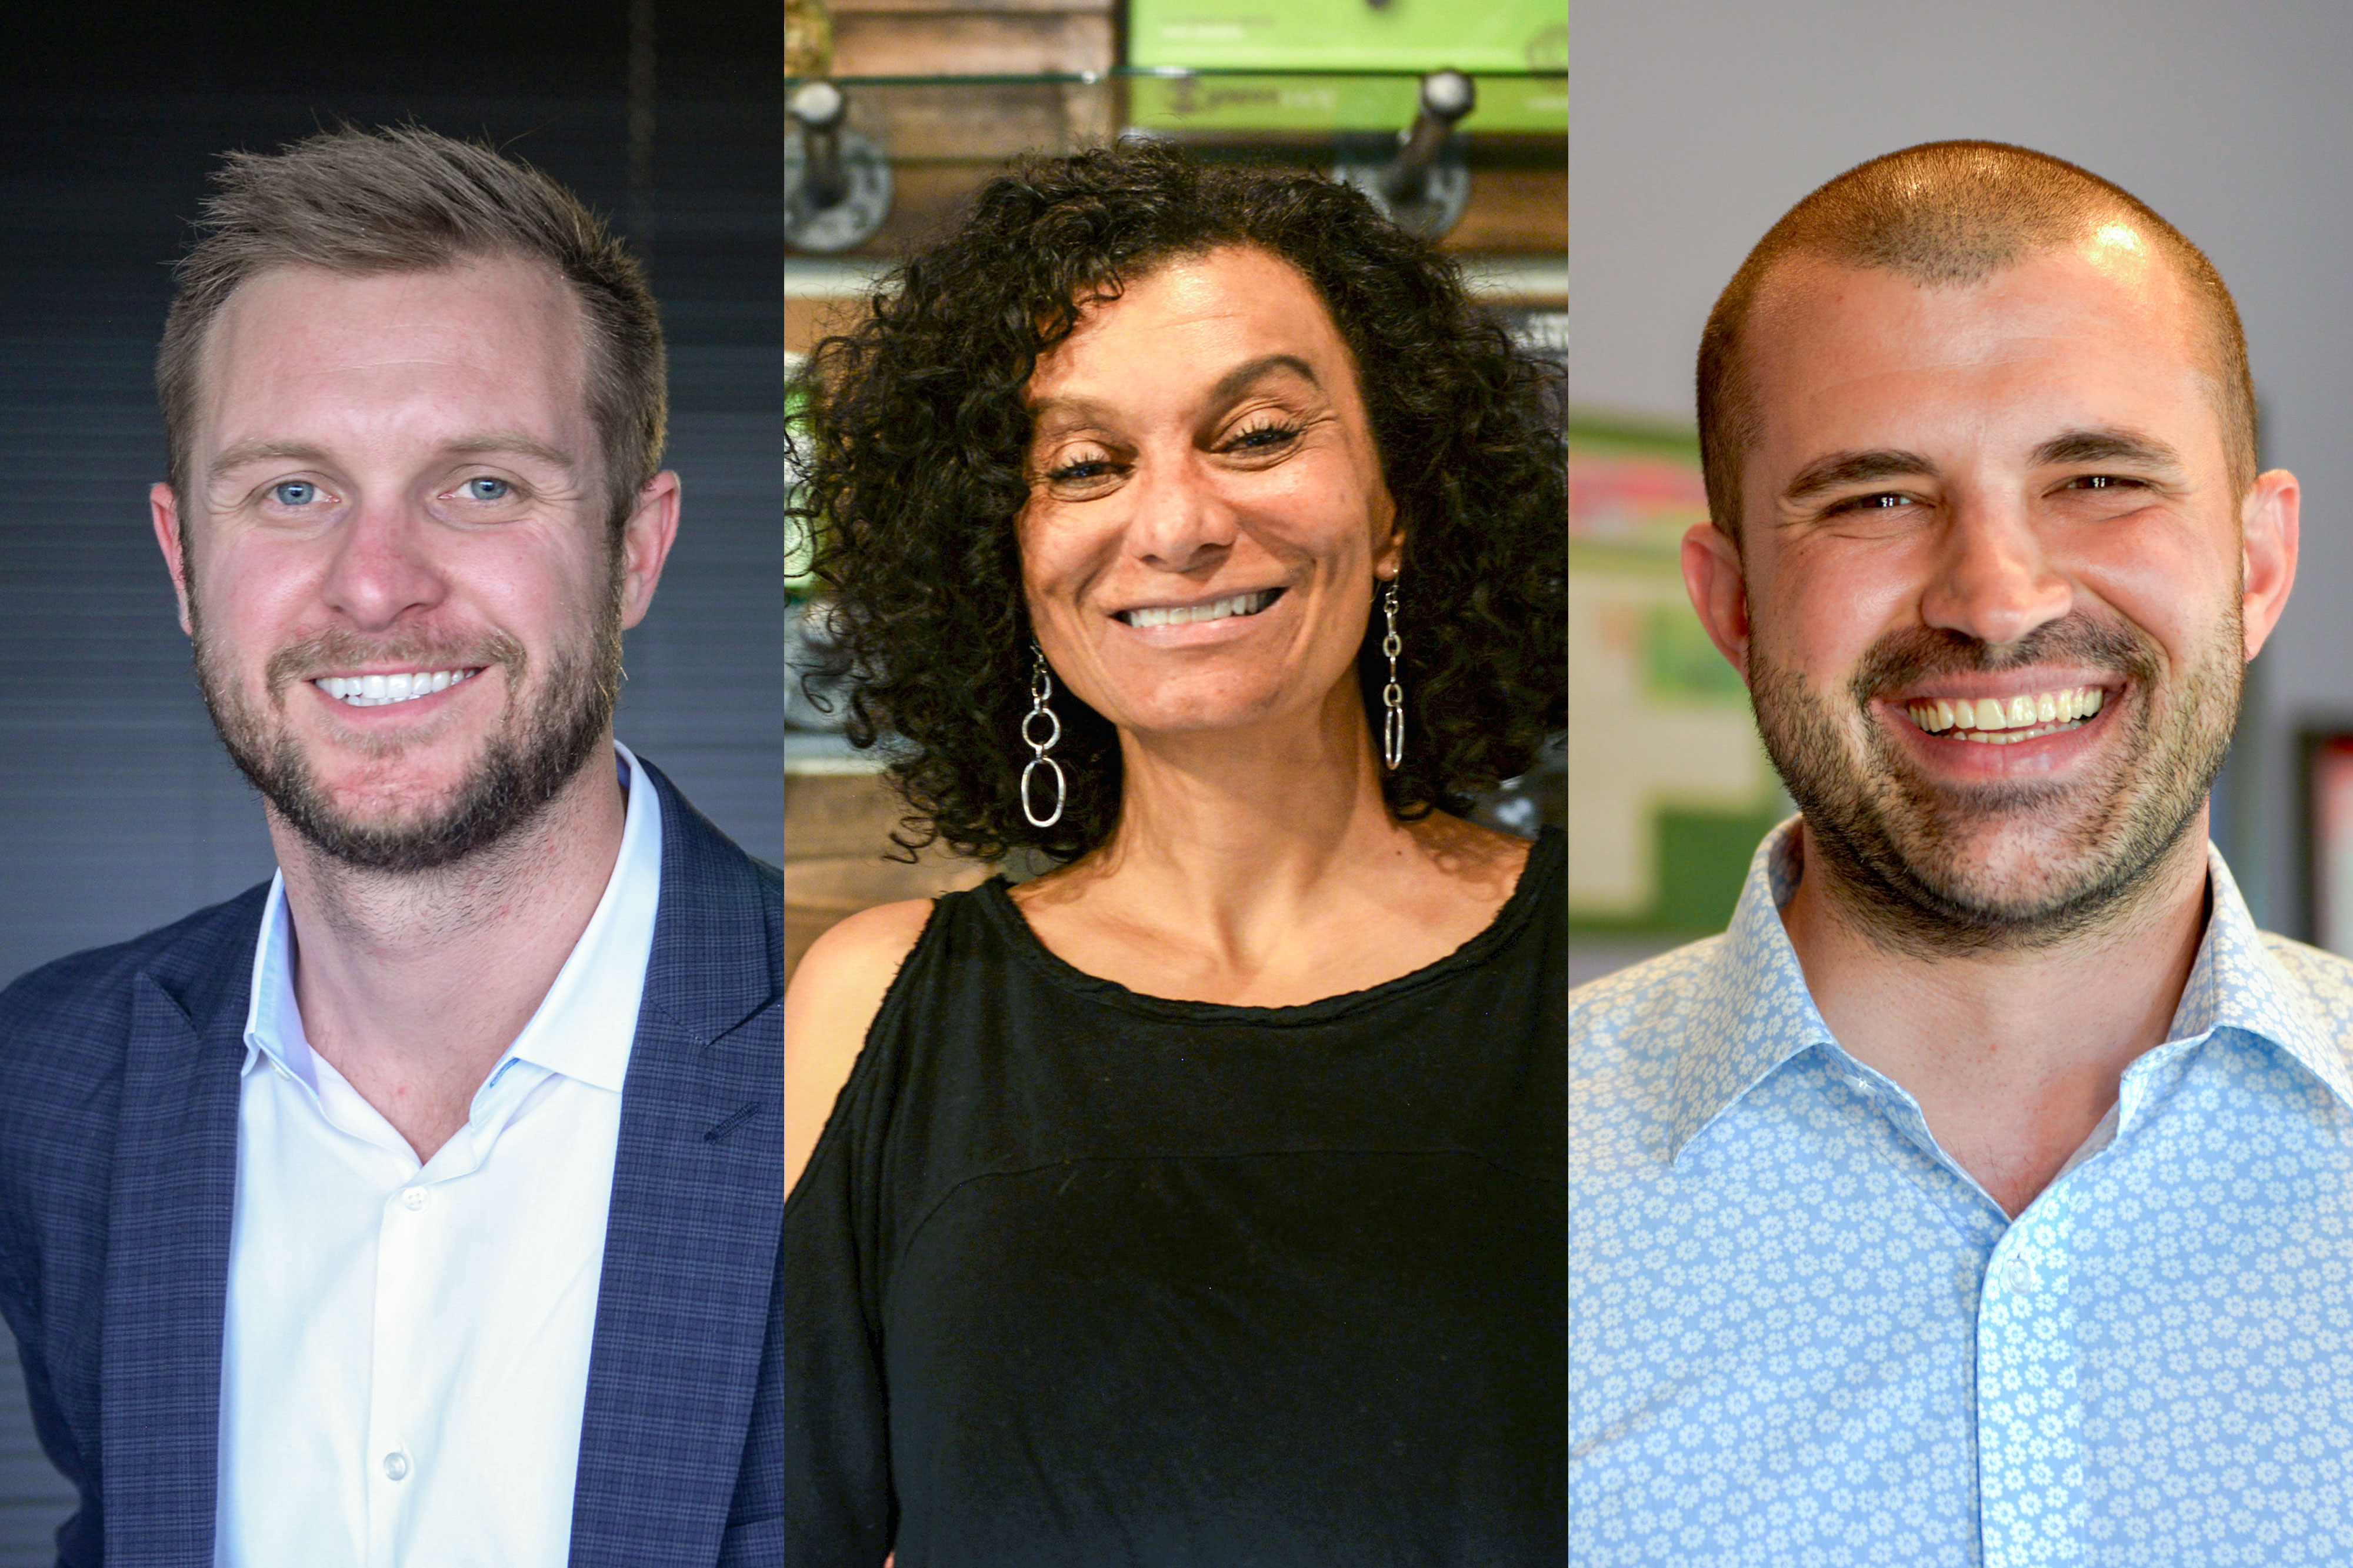 <p>From left to right, Keegan Peterson of Wurk, Wanda James of Simply Pure and Kayvan Khalatbari of Denver Relief Consulting.</p>